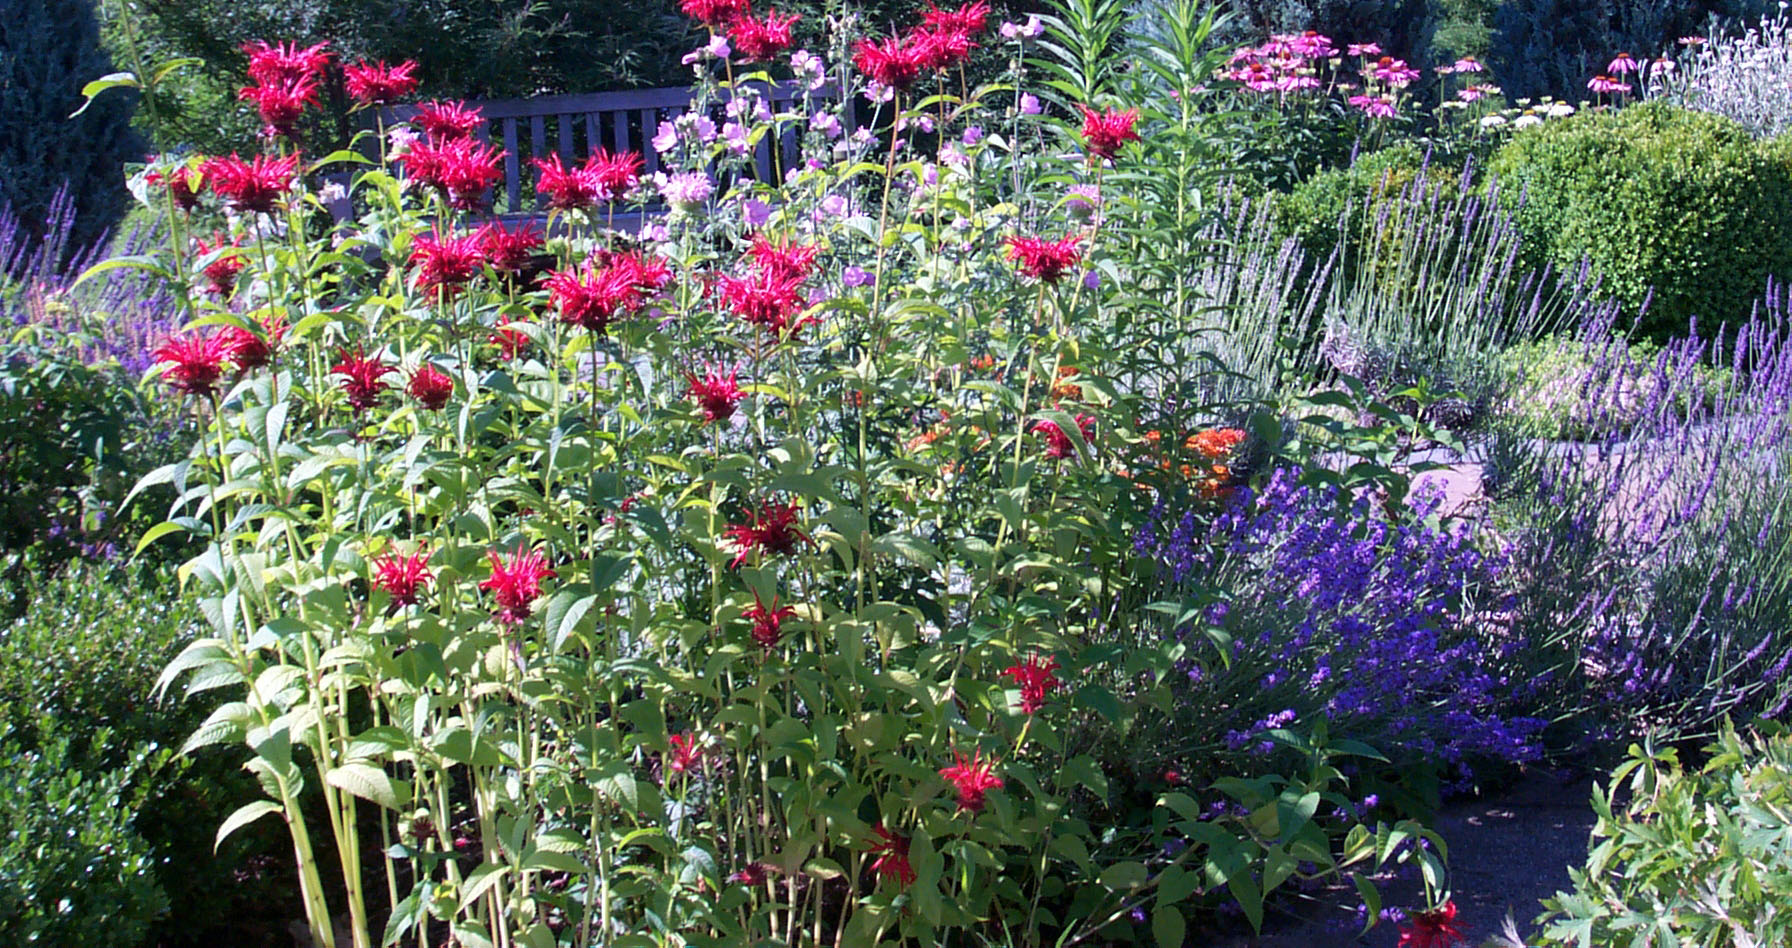 A flower garden with a variety of pink, red, white, purple and lavender flowers.